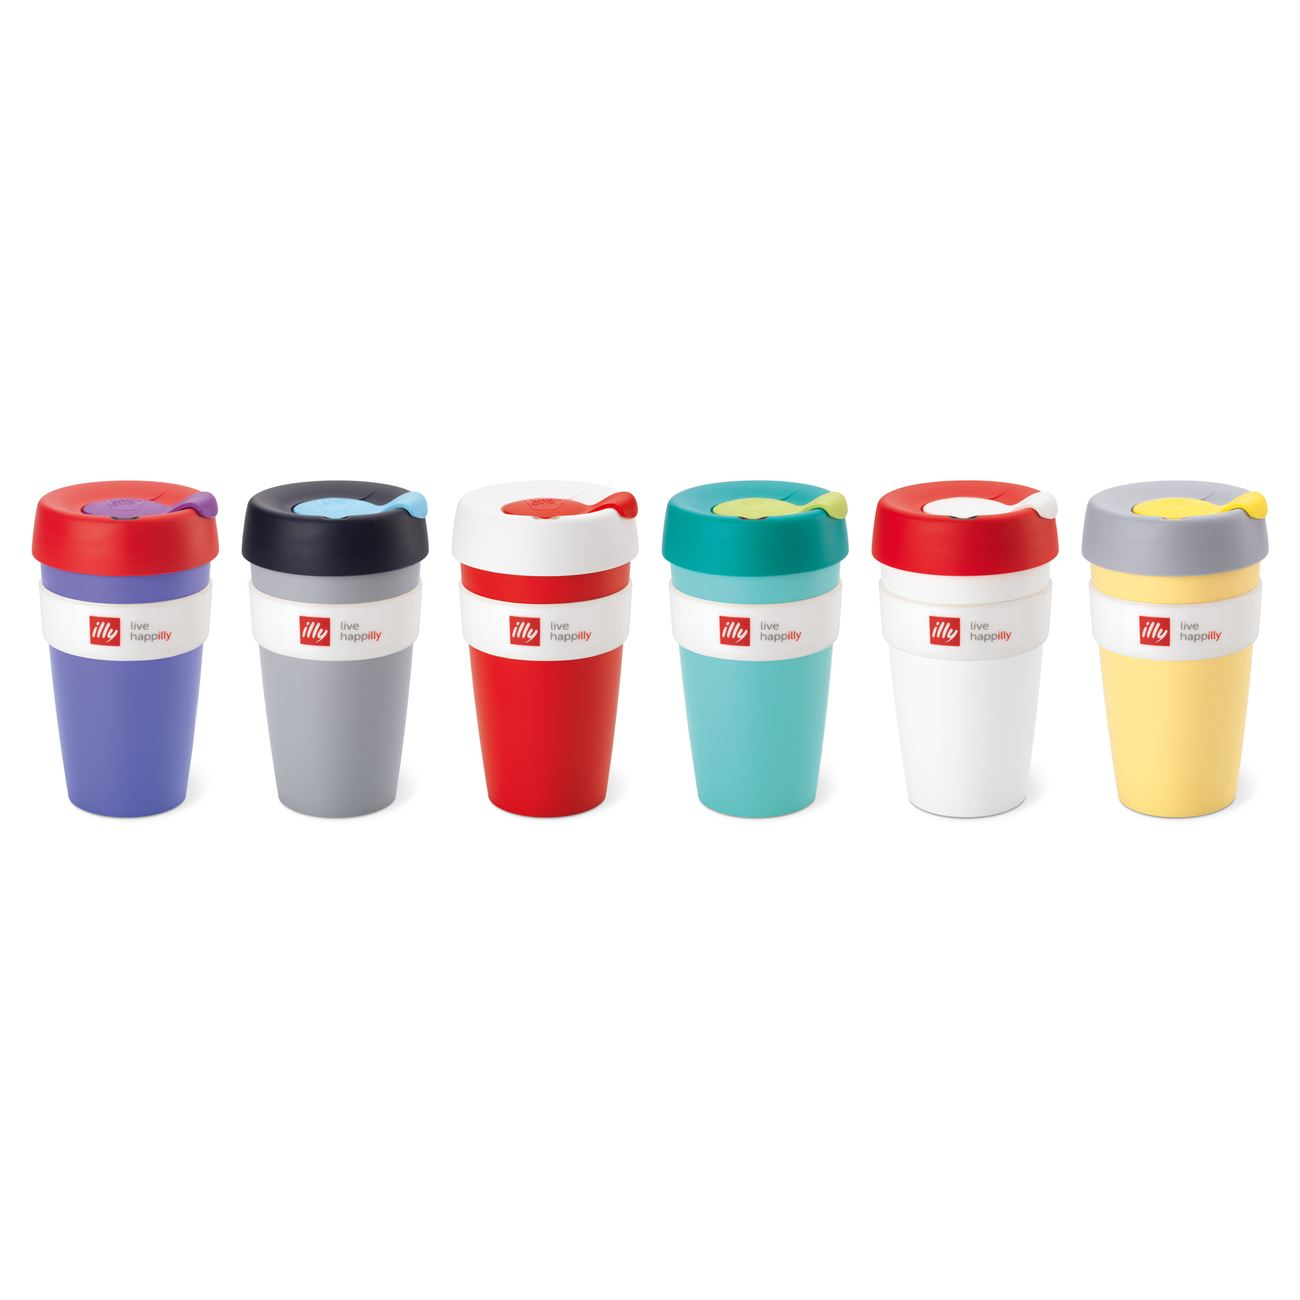 KEEP CUP LIVE HAPILLY / TRAVEL MUG < Accessories   IllyShop